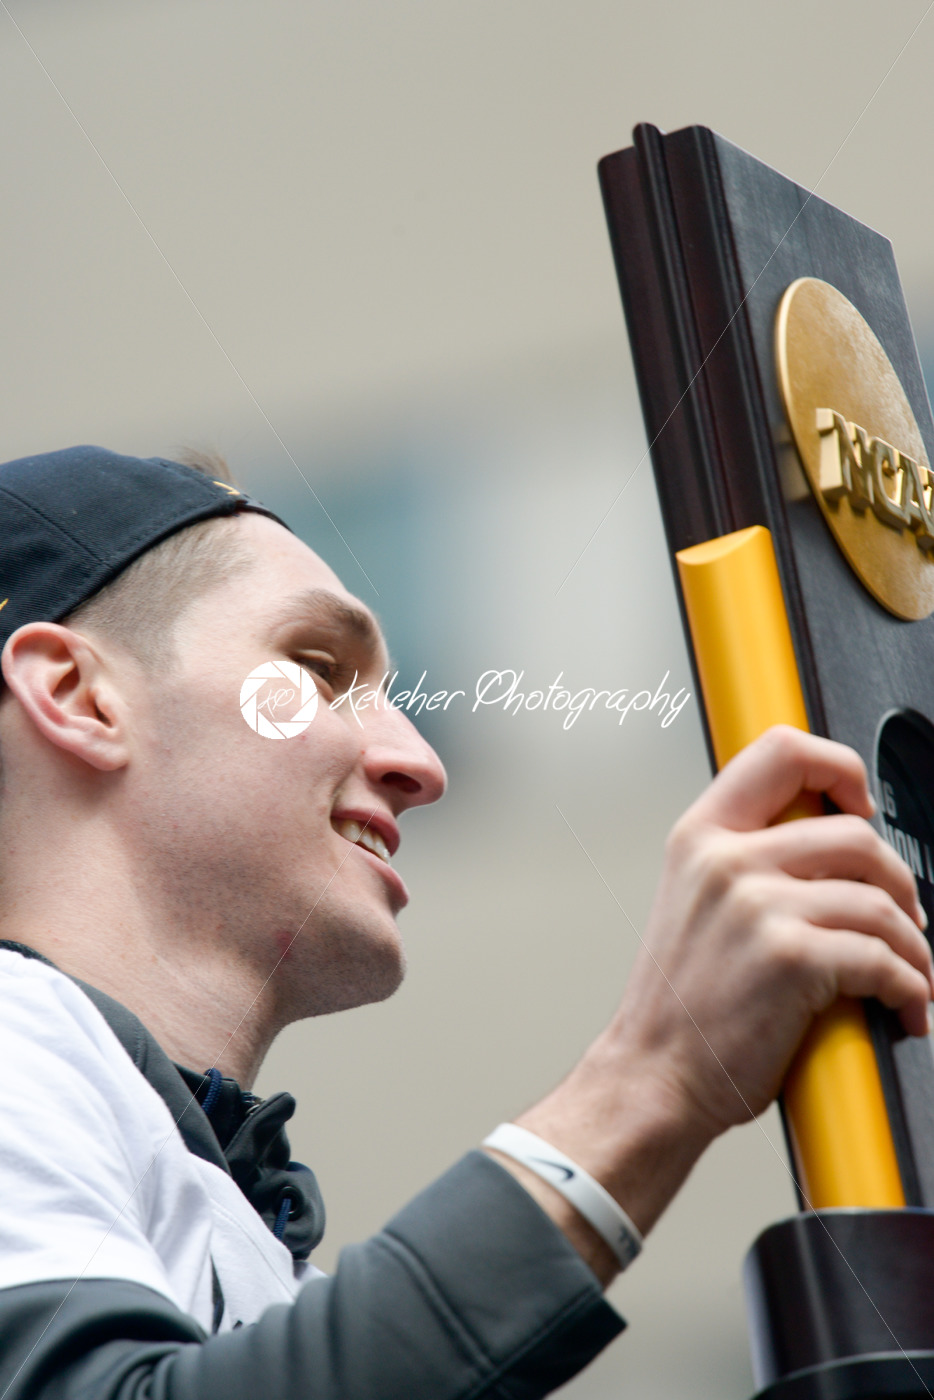 PHILADELPHIA, PA – APRIL 8: Celebration Parade for Villanova Men's Basketball Team, 2016 NCAA Champions on April 8, 2016 - Kelleher Photography Store